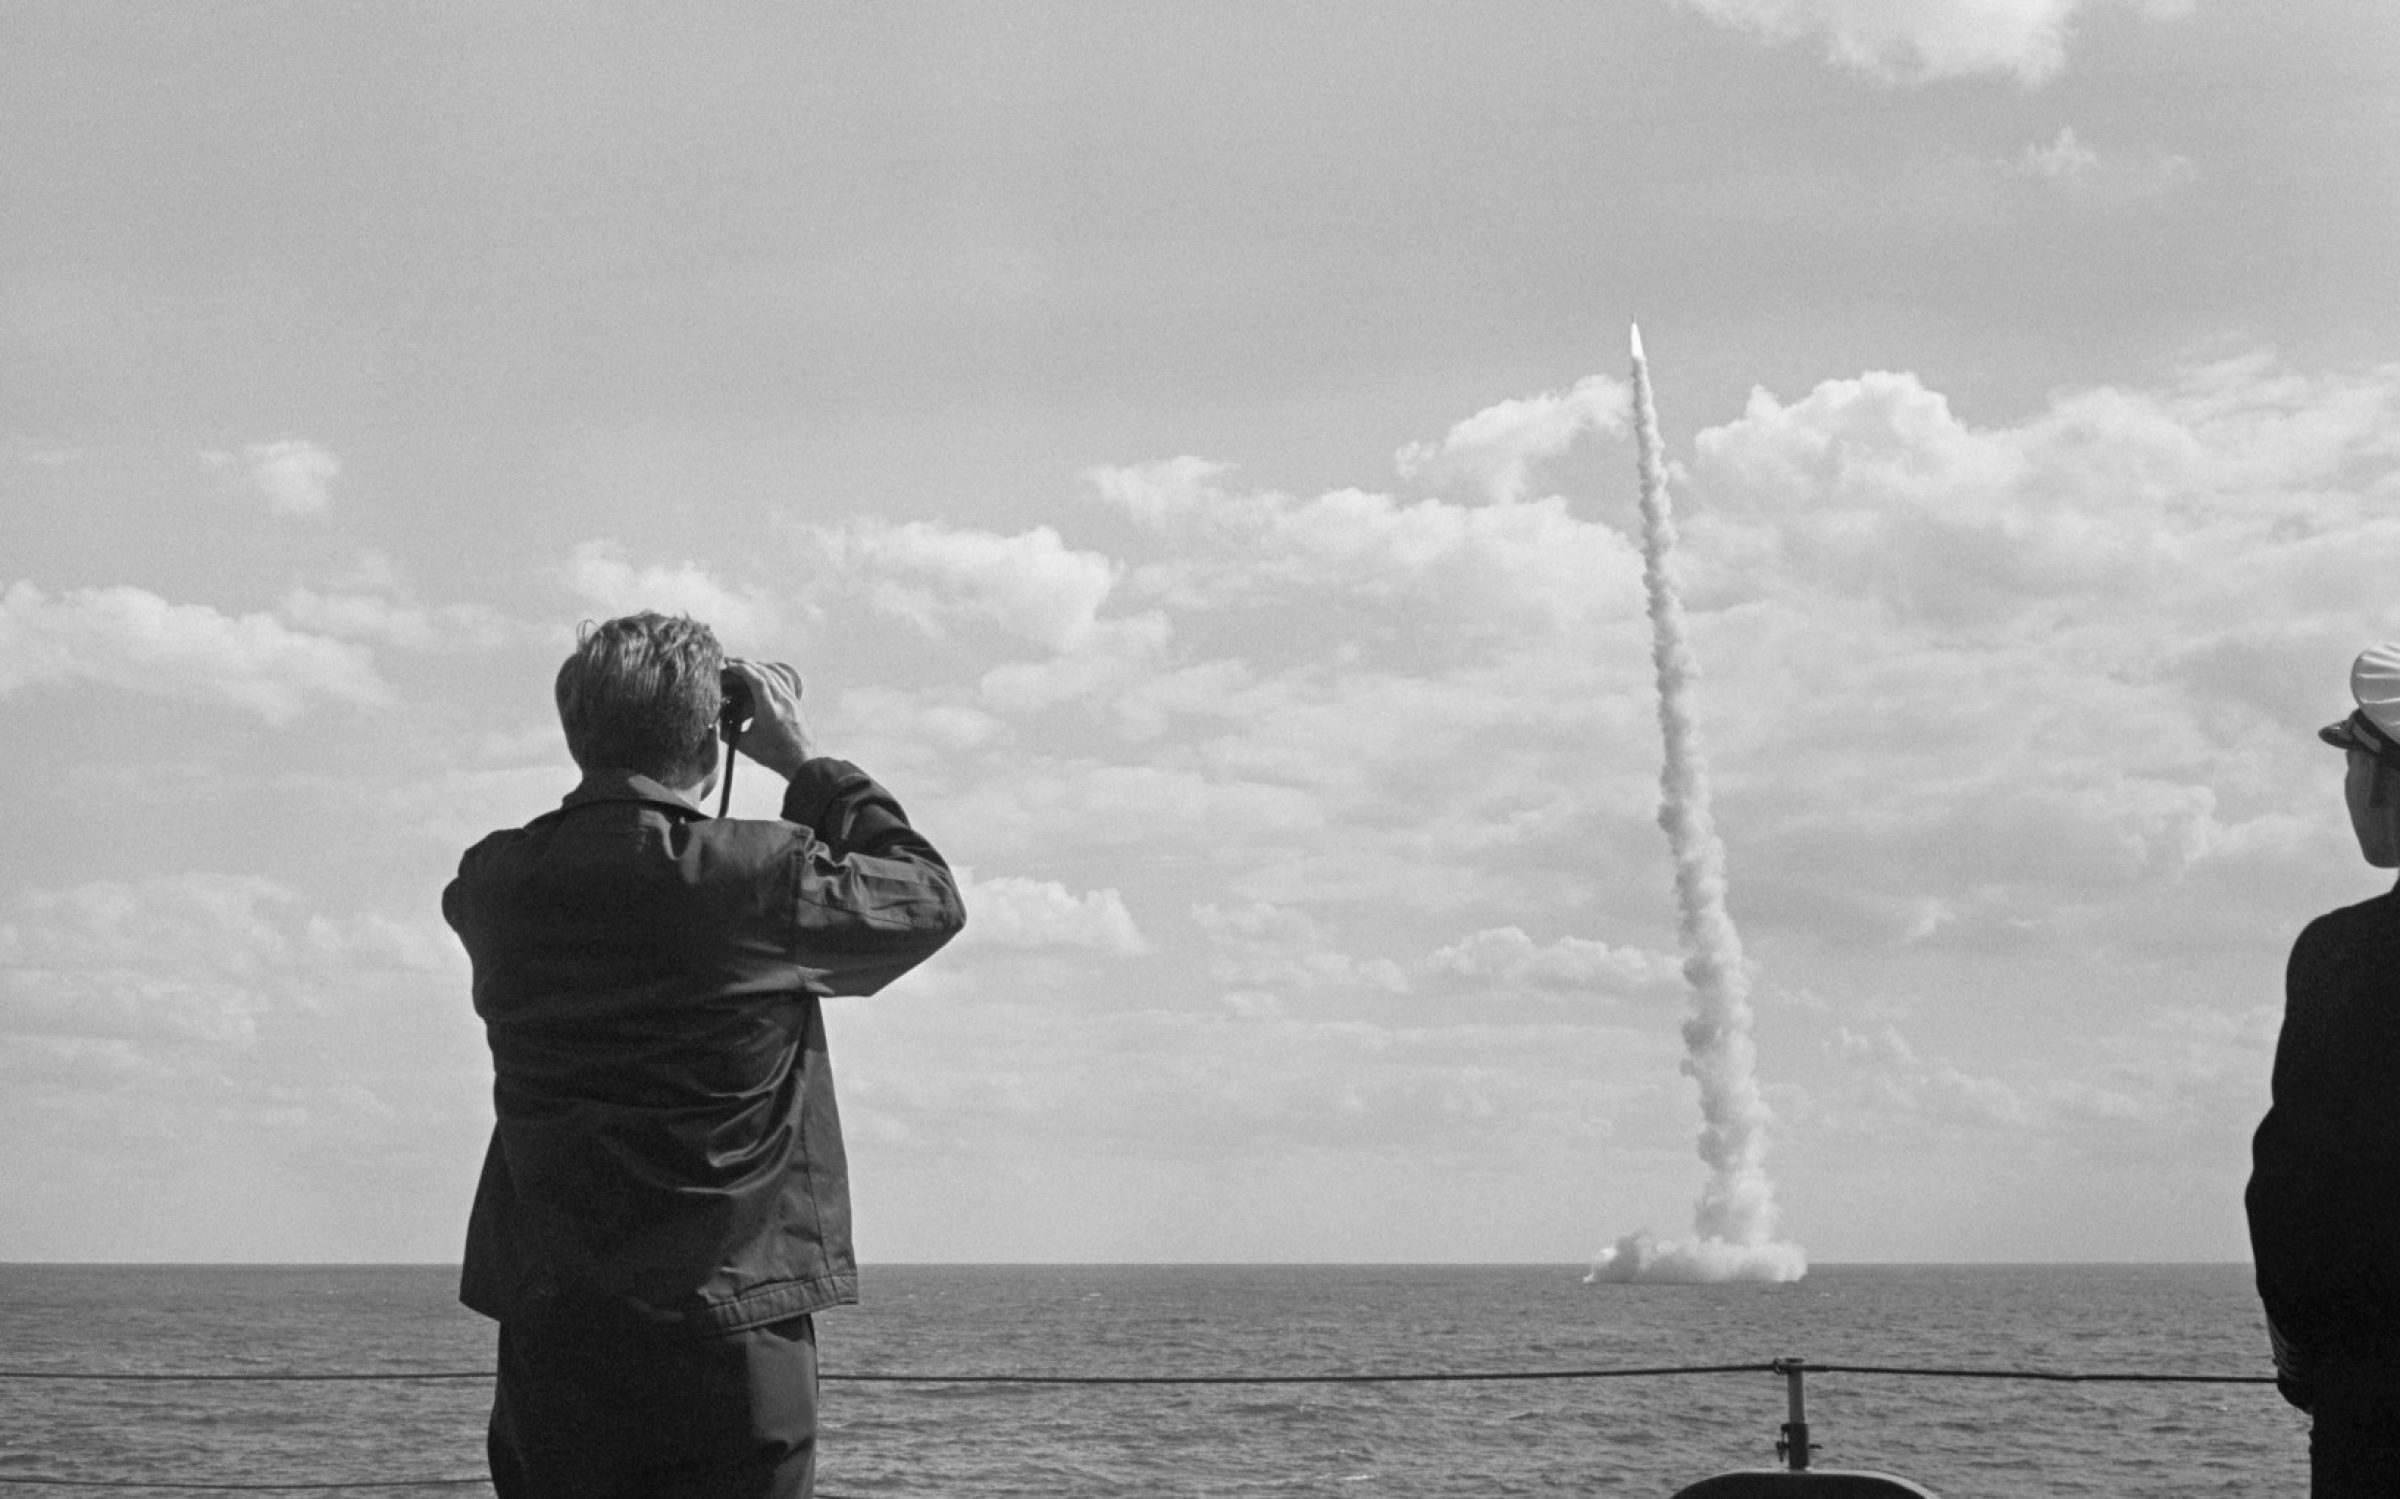 US President John F. Kennedy observing a missile launch of Polaris on board an aircraft carrier. Credit: Getty Images.